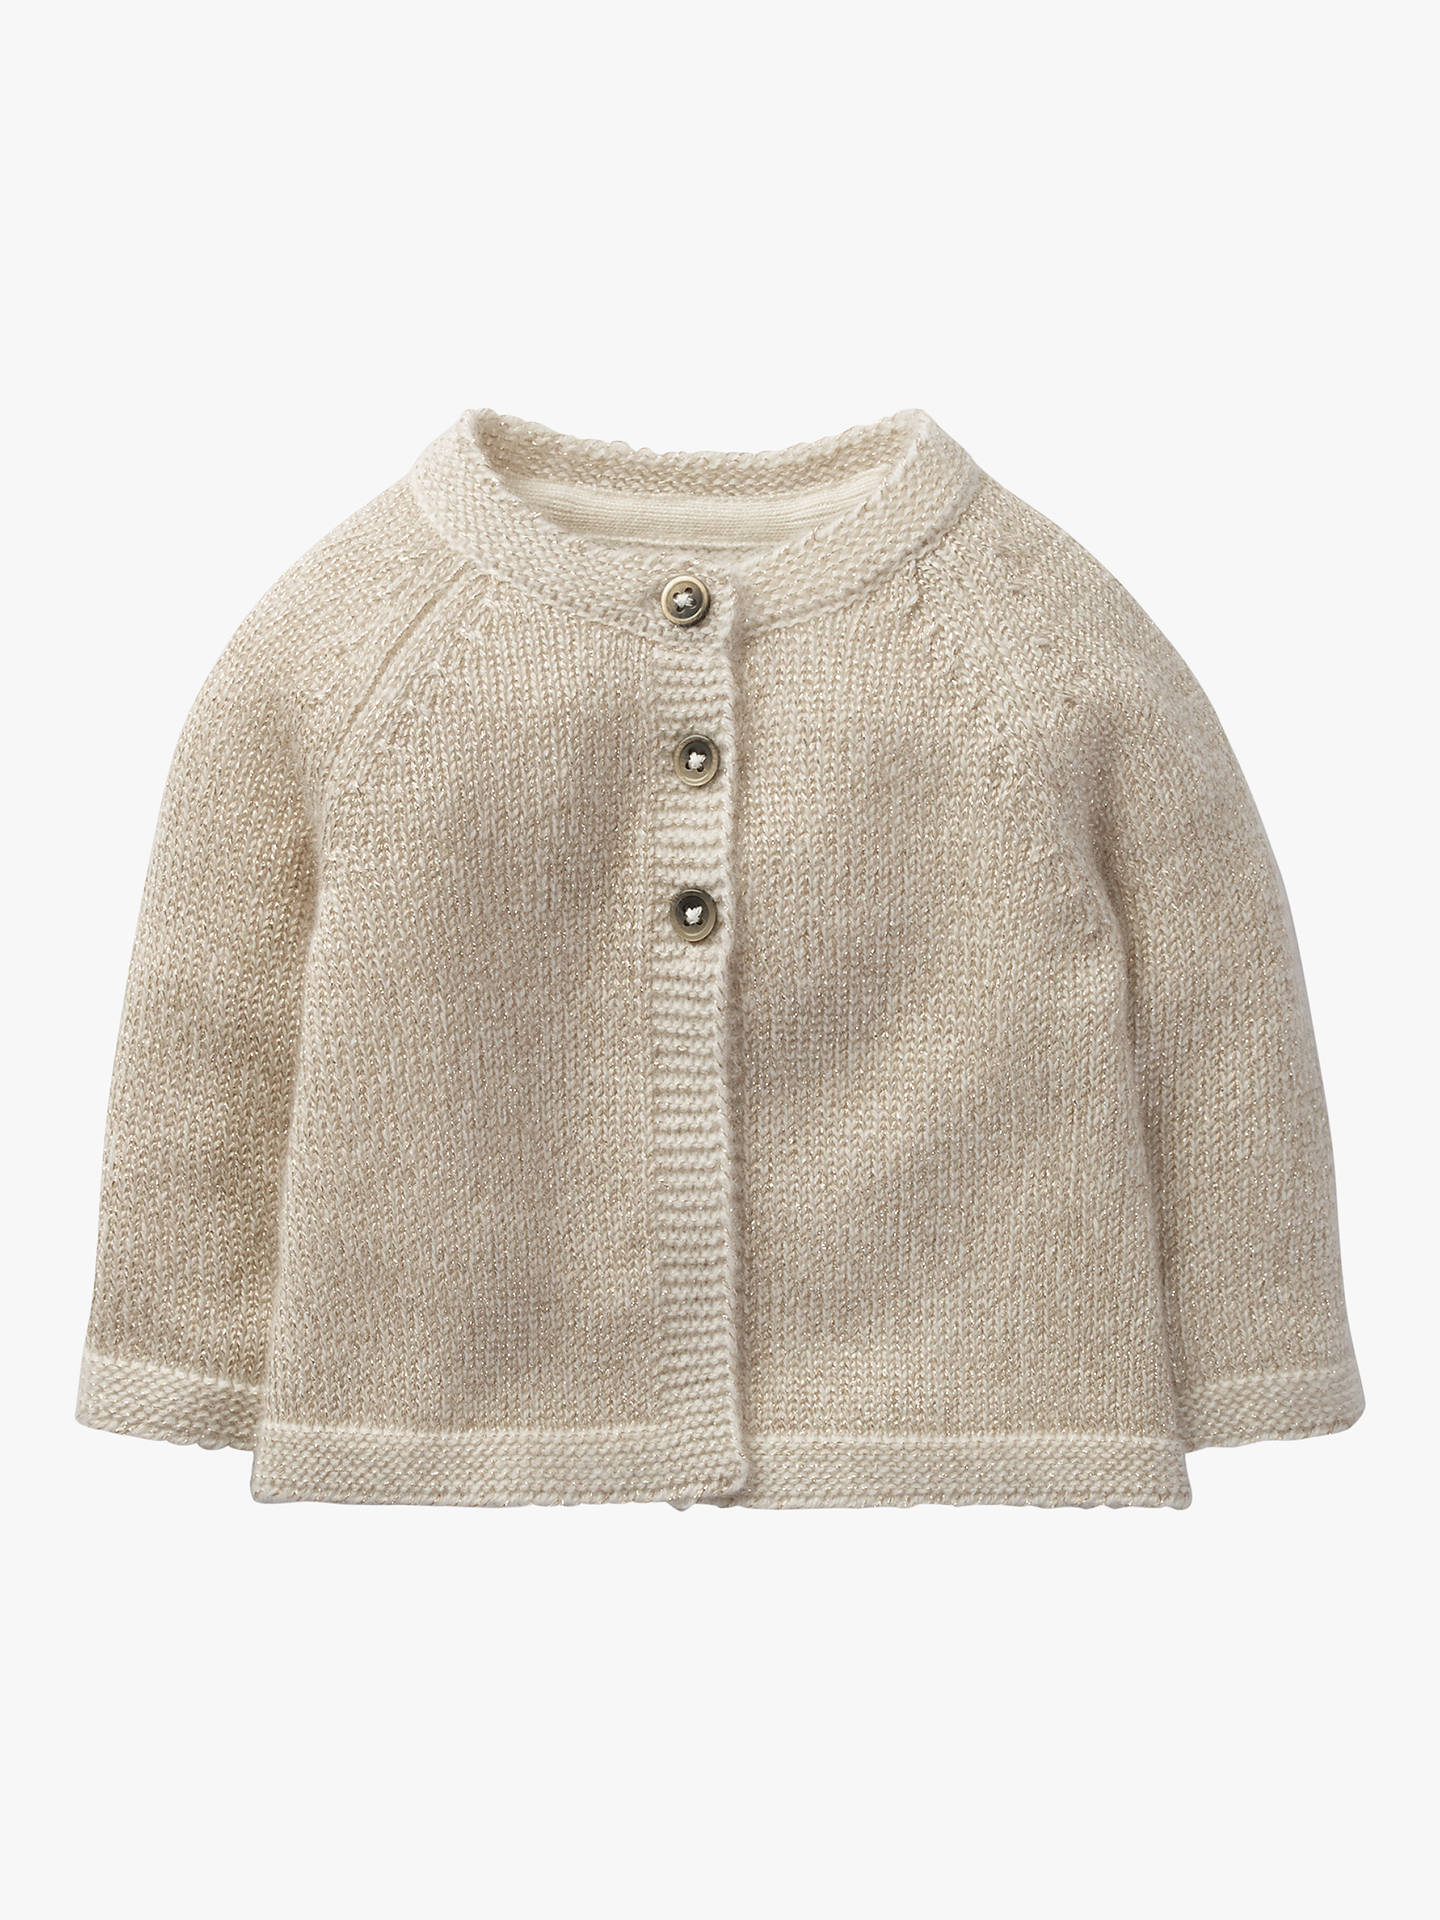 7a1a3358753b Mini Boden Baby Cashmere Cardigan